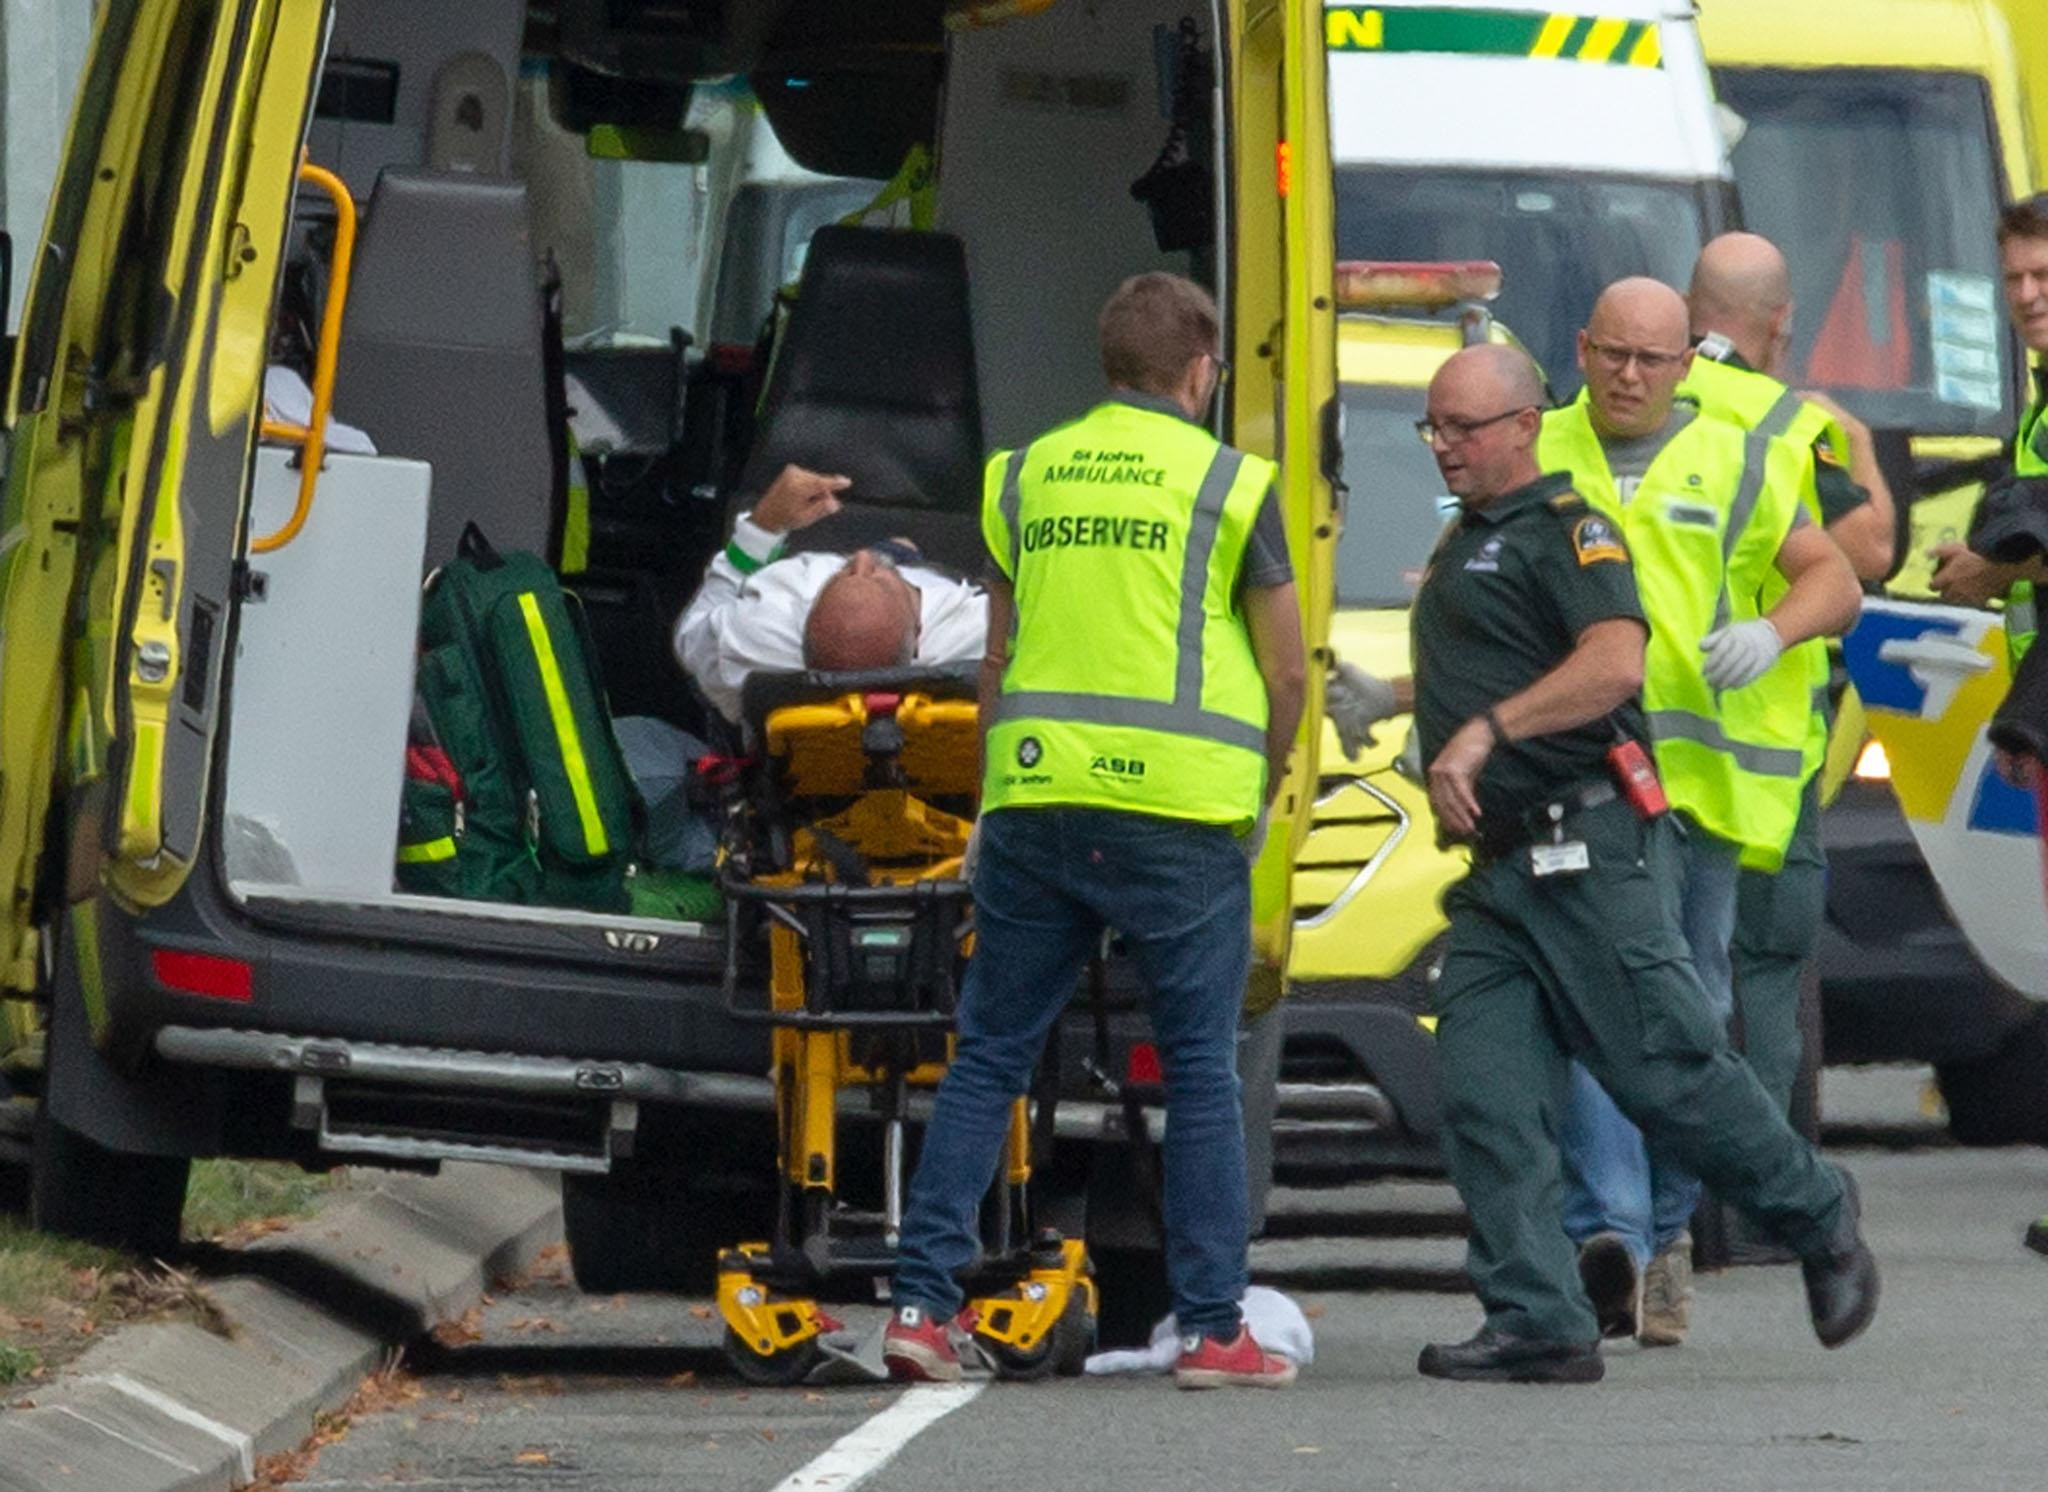 New Zealand attack video spreads across Twitter, YouTube and Reddit